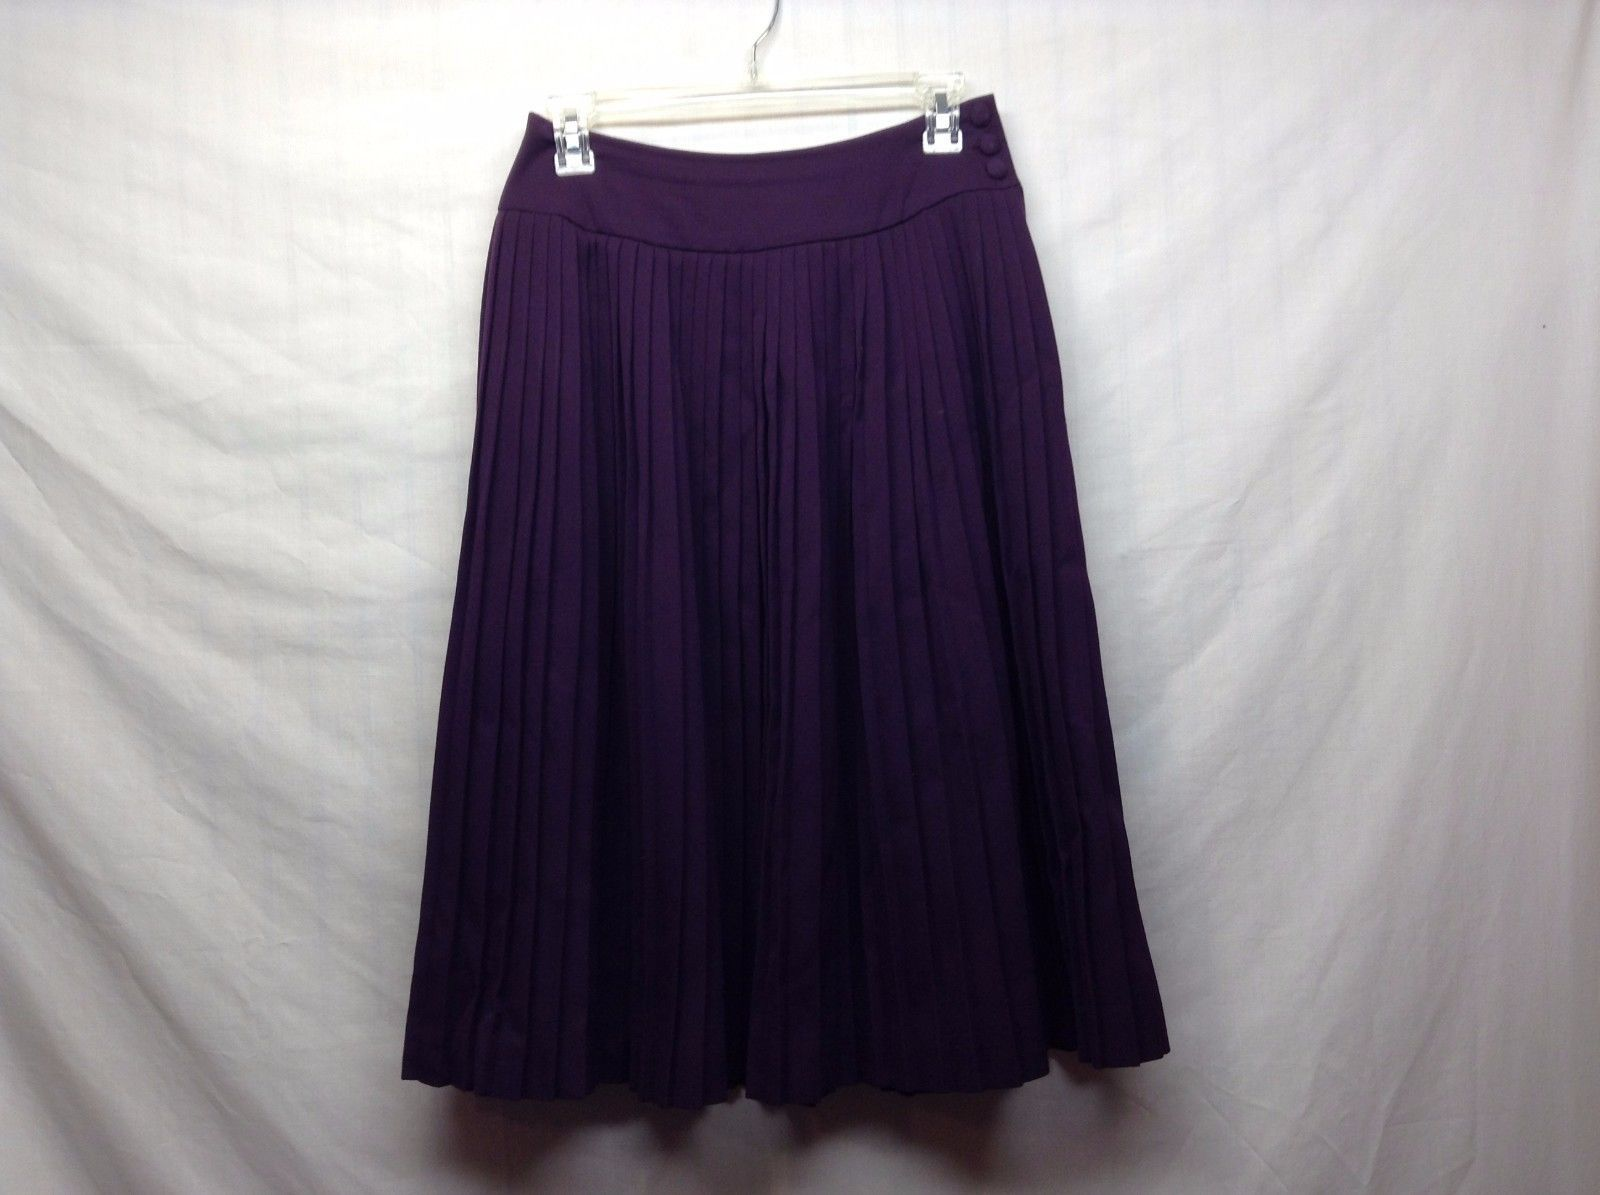 Tahari Pure Wool Heavy Weight Ruffled Deep Purple Skirt Sz S